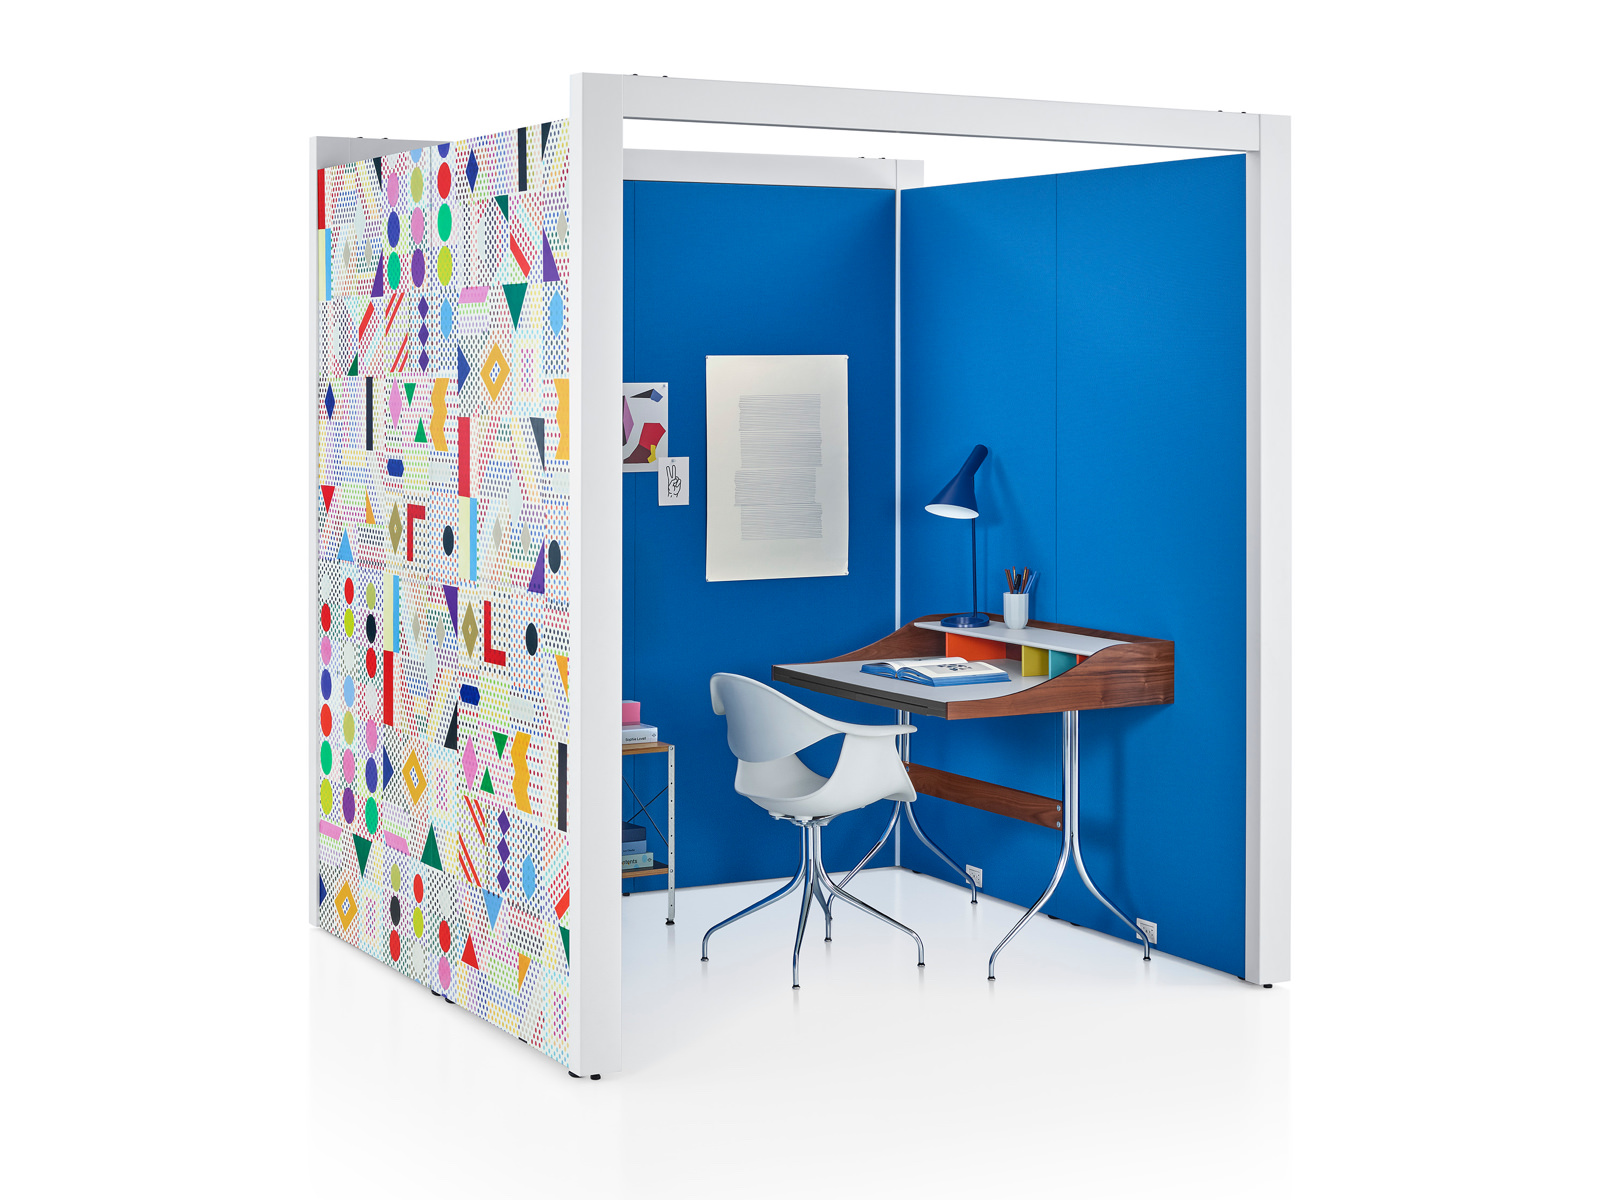 A three-sided Overlay space with blue tackable fabric interiors and colorful geometric pattern on the exterior wall with a chair and desk inside.